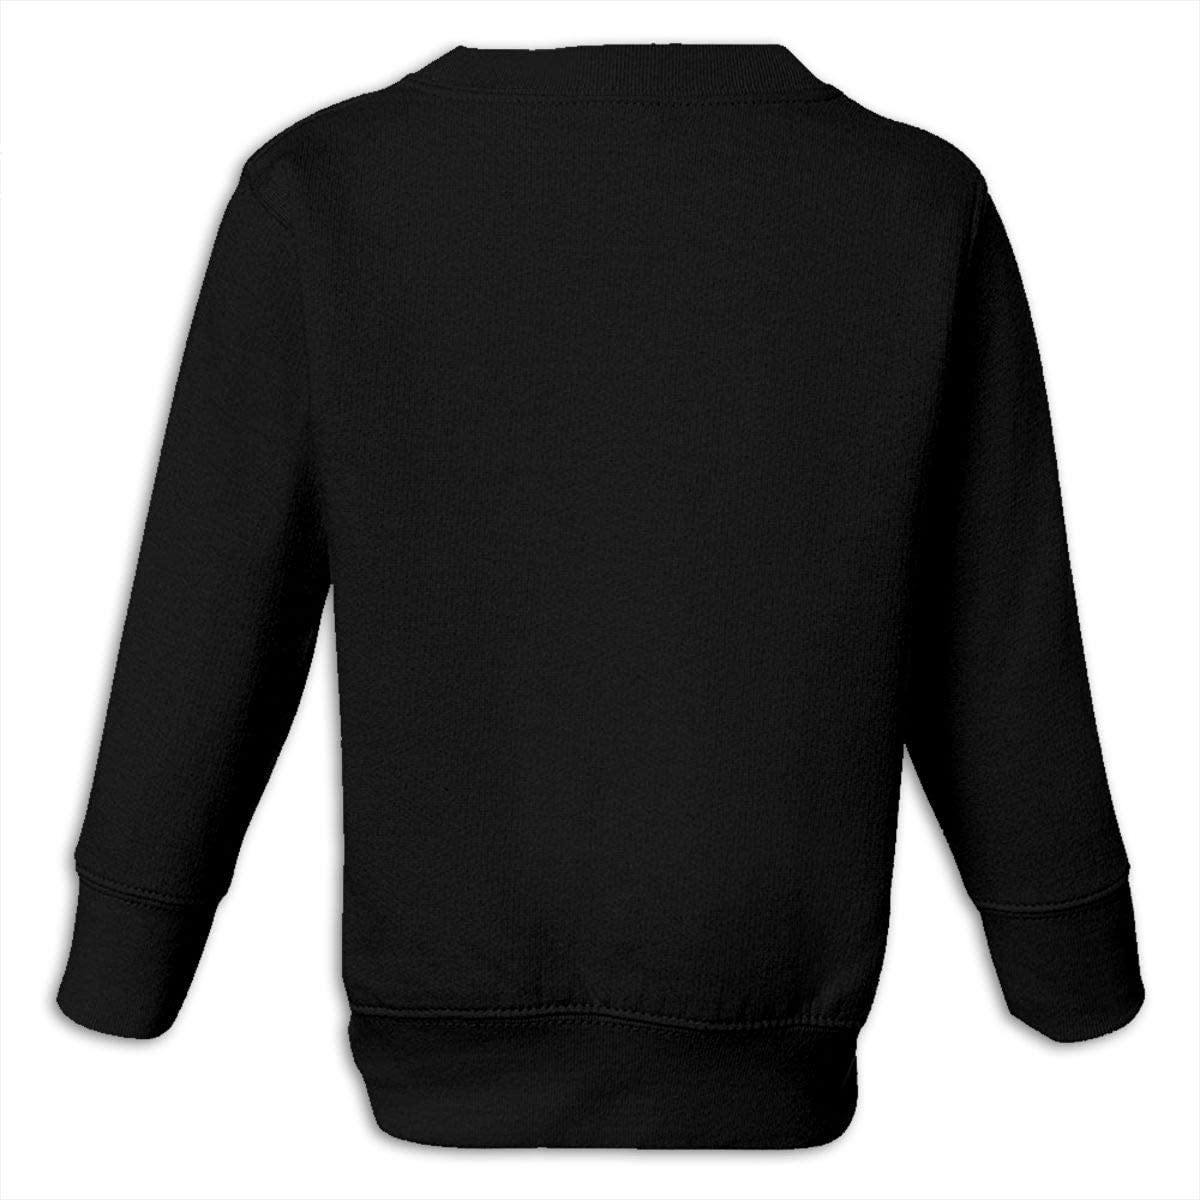 wudici Herd That Boys Girls Pullover Sweaters Crewneck Sweatshirts Clothes for 2-6 Years Old Children